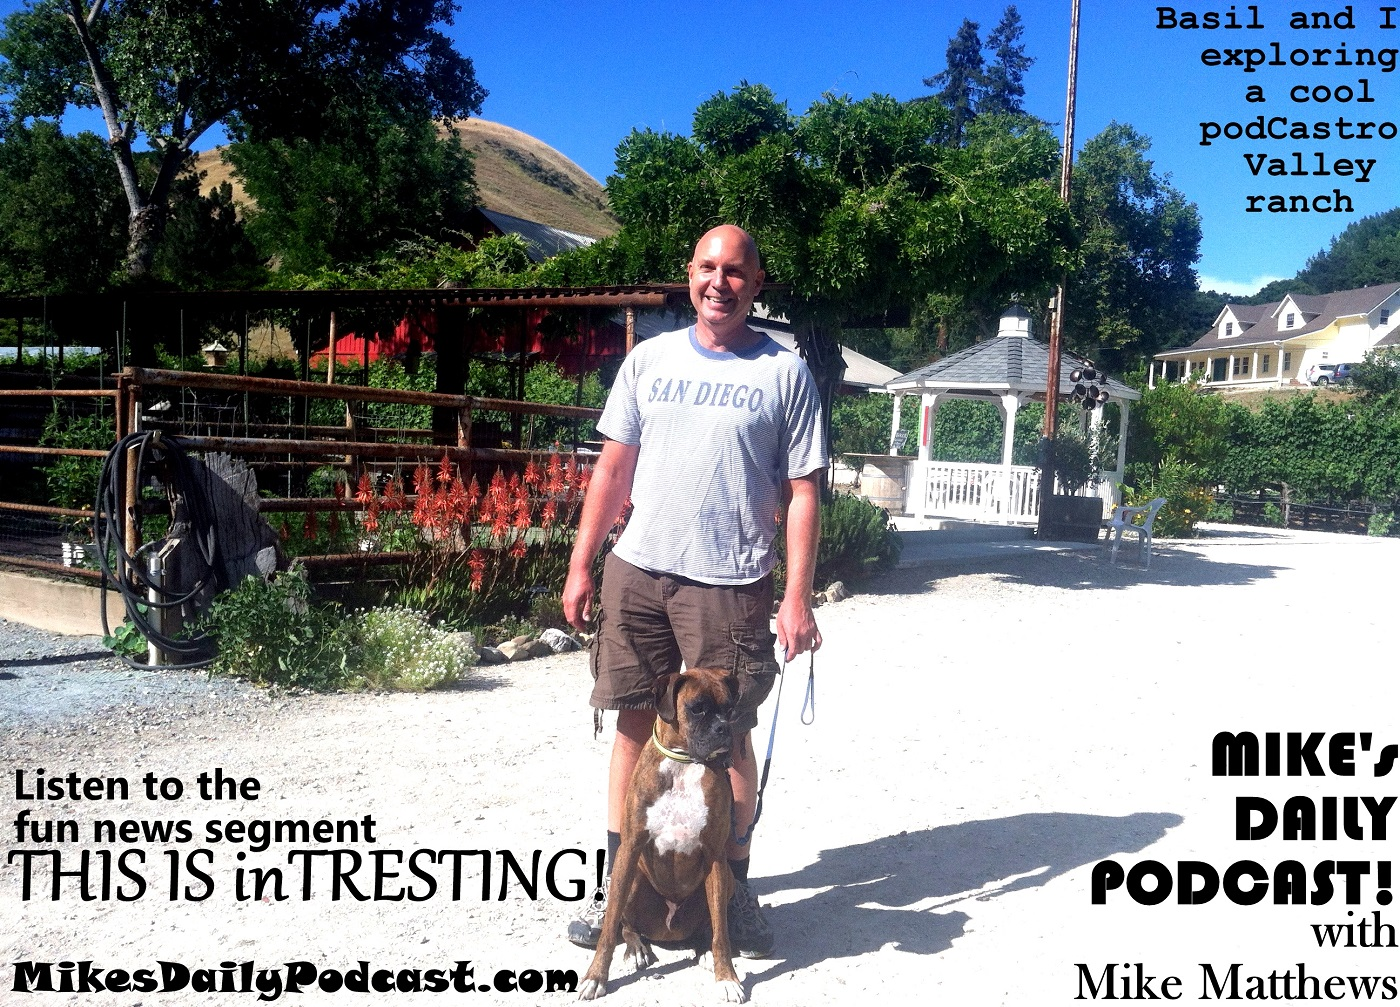 MIKEs DAILY PODCAST 8-31-15 Castro Valley Winery Twinning